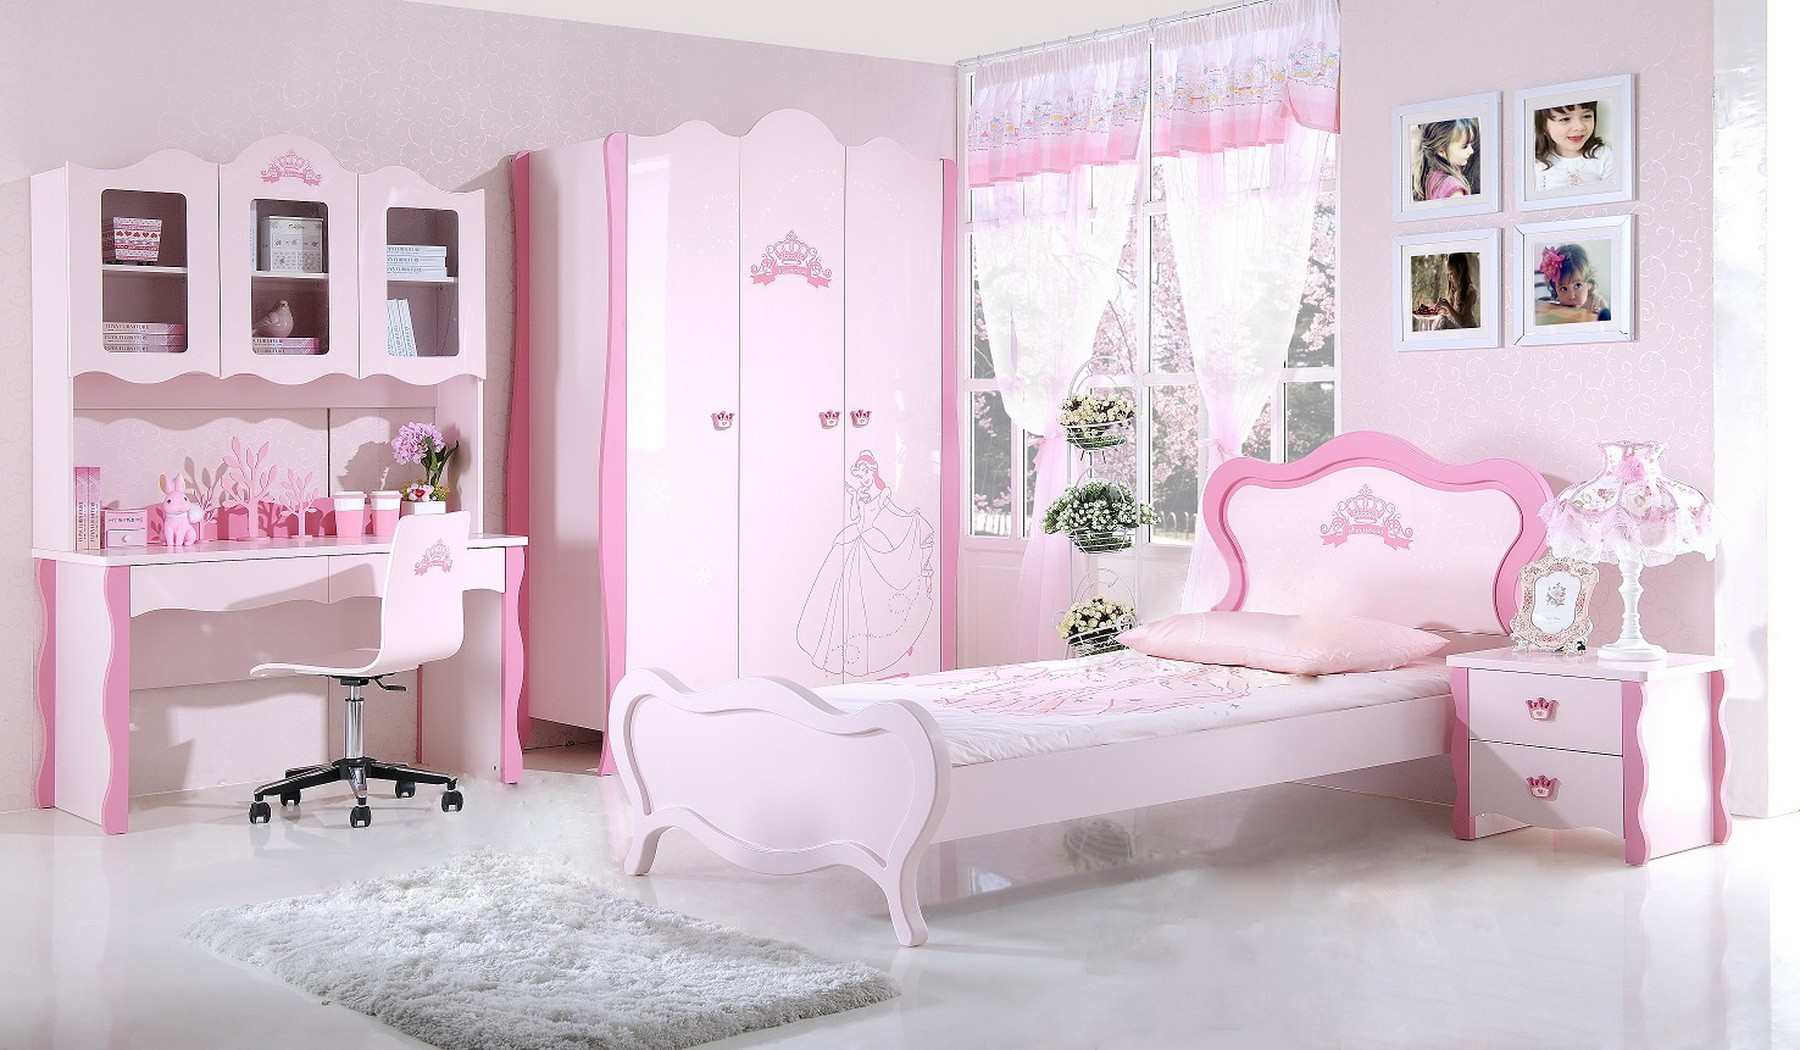 deco-in.fr/wp-content/uploads/2016/05/chambre-enfant-complete-rose-design-princesse-disney-30.jpg